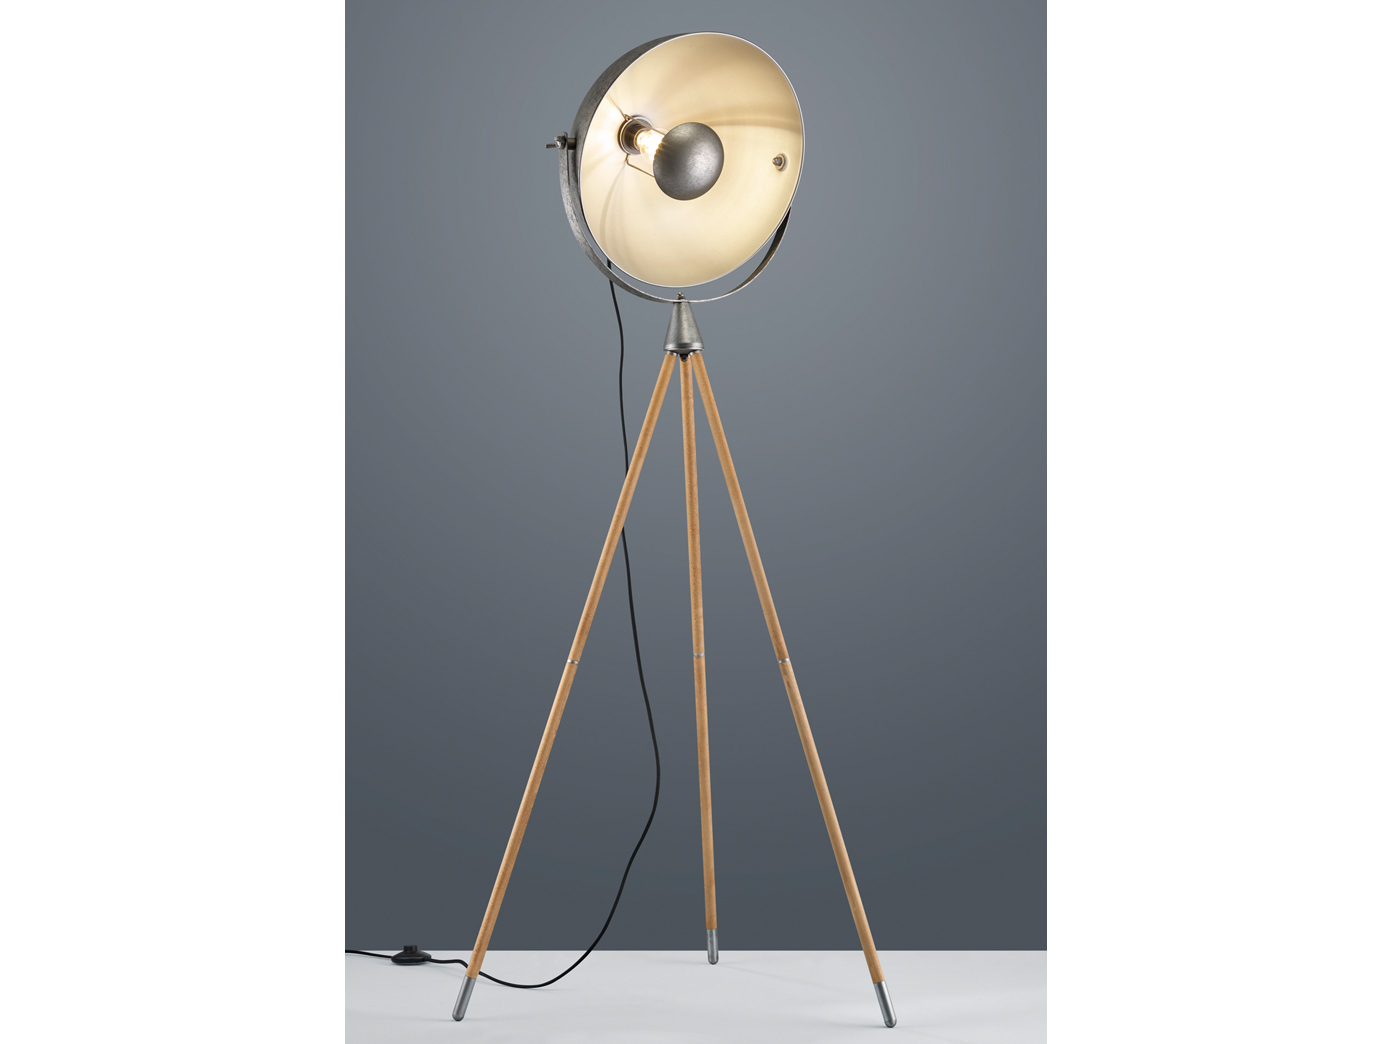 Grosse Retro Tripod Stehlampe Holz Industrial Style Studio